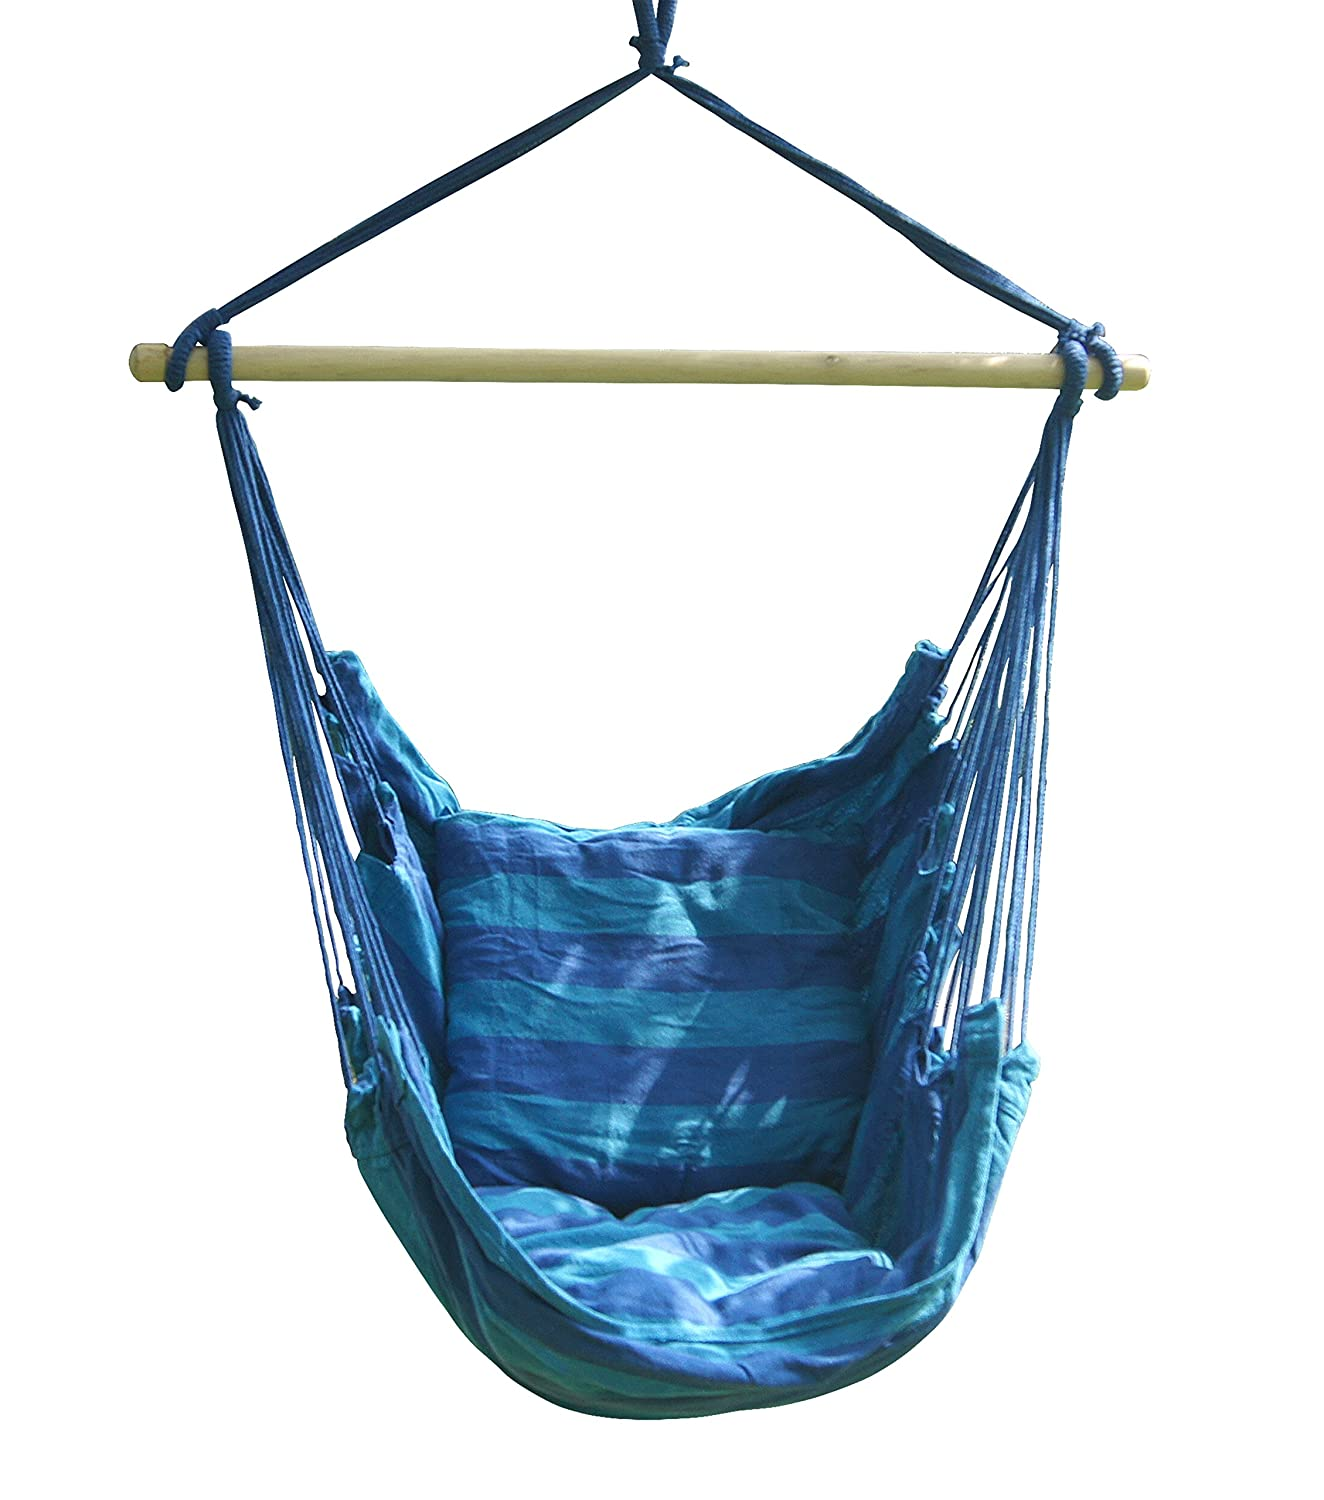 Amazon com   SueSport Hanging Rope Chair   Swing Hanging Hammock Chair    Porch Swing Seat   With Two Cushions   Max 265 Lbs  Blue   Garden   Outdoor. Amazon com   SueSport Hanging Rope Chair   Swing Hanging Hammock